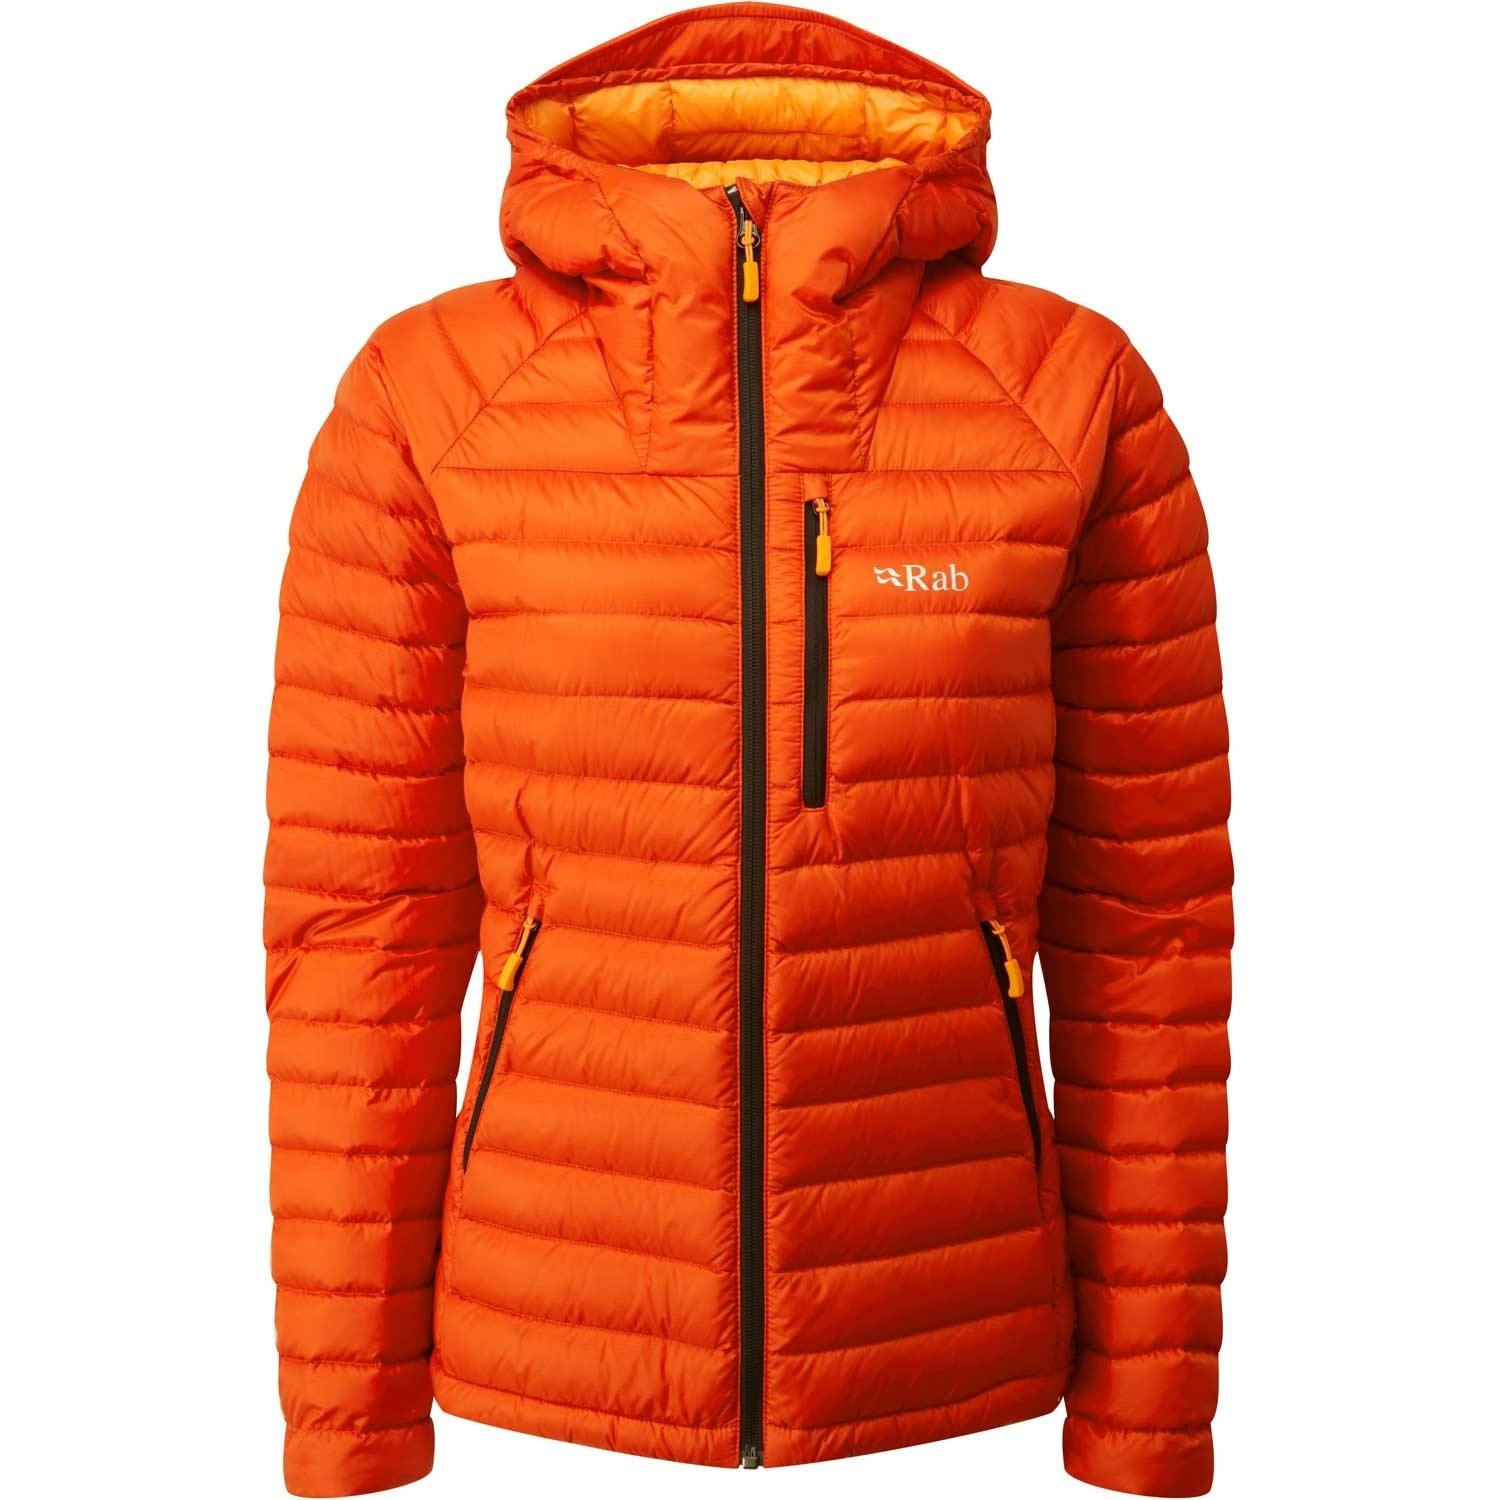 Rab Microlight Alpine Women's Down Jacket - Firecracker